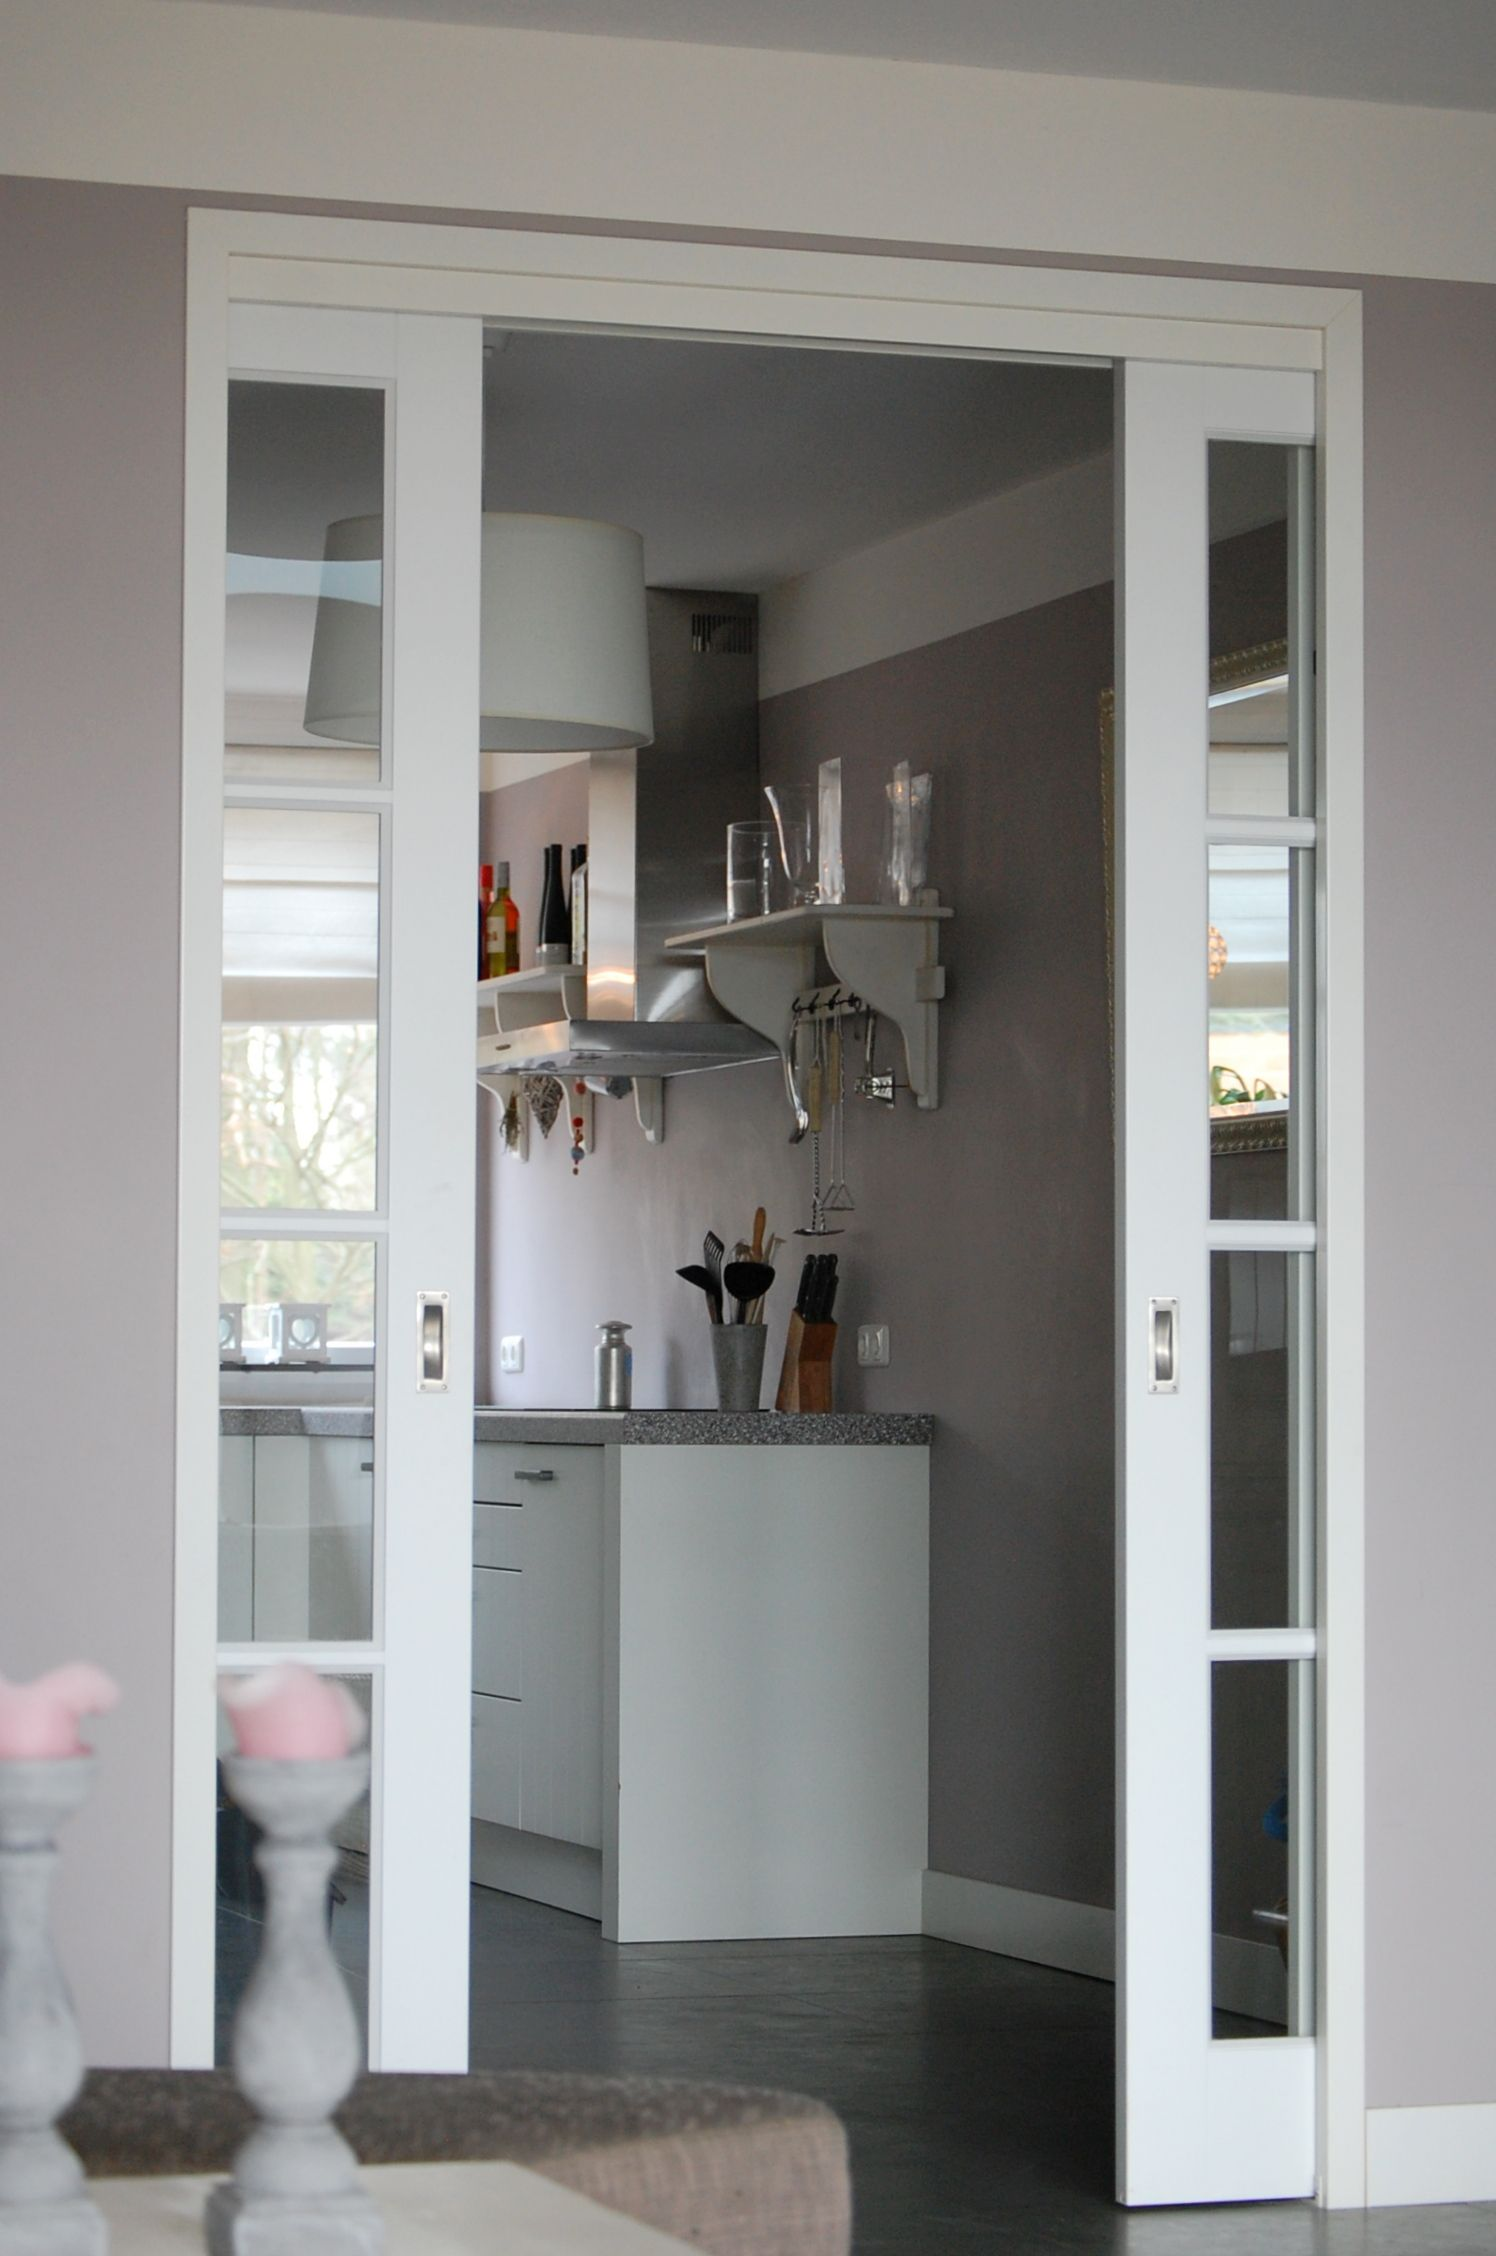 I Love Pocket Doors And Its Unusual To See Them With Glass Panels Nice Way Get More Licht Into Interior Spaces